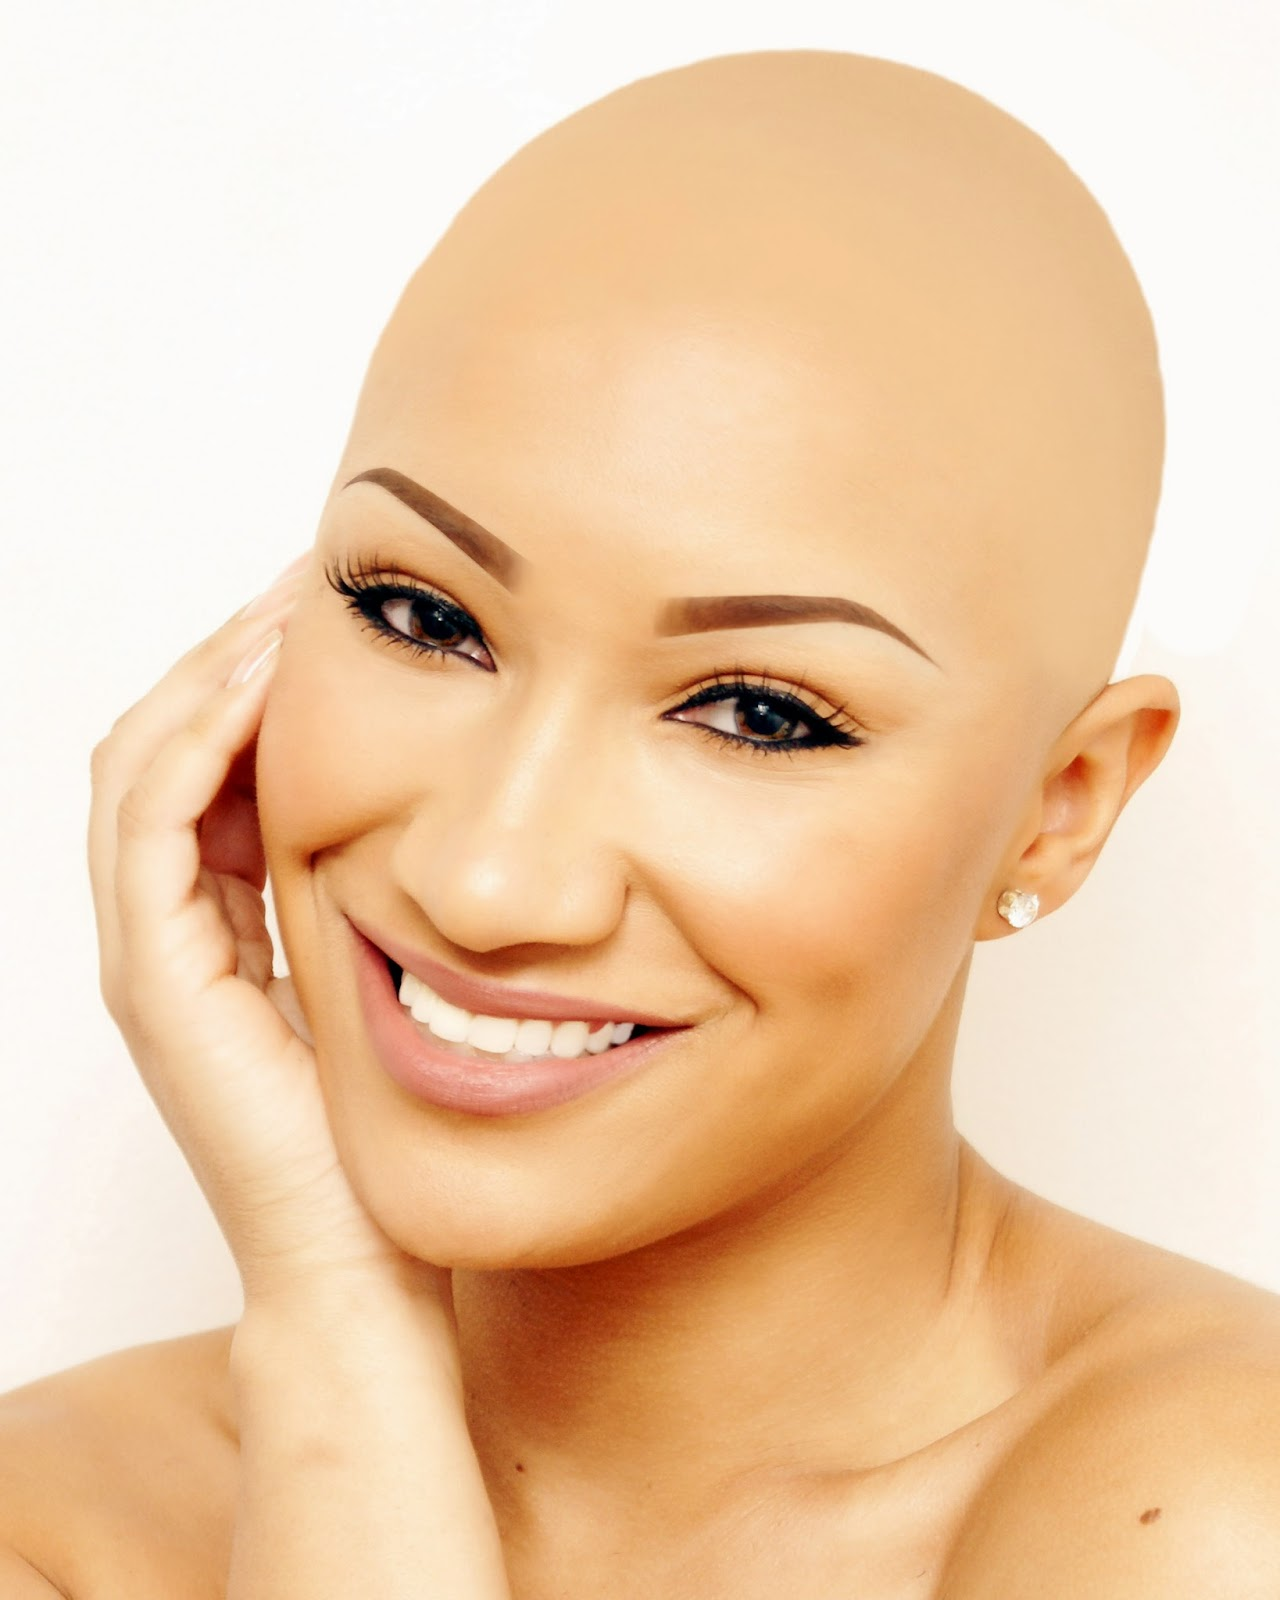 cute bald headed girls